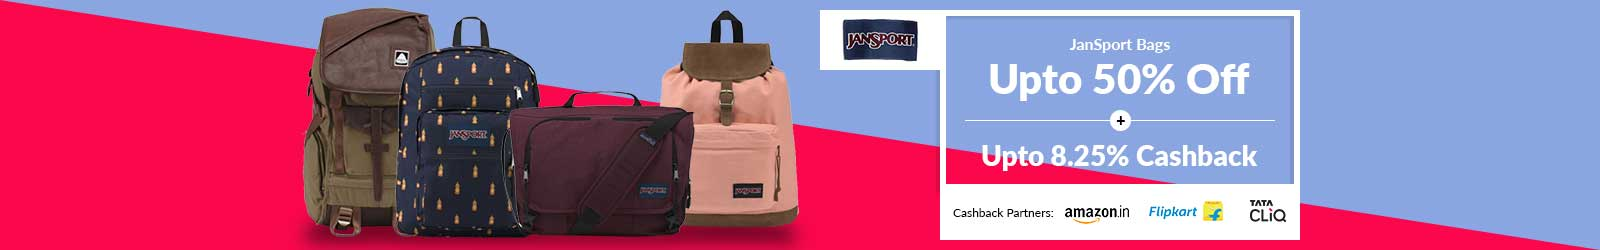 513e9b4b8 JanSport Bags Price List India, Offers: 55% Discount + 10% Cashback, 2019